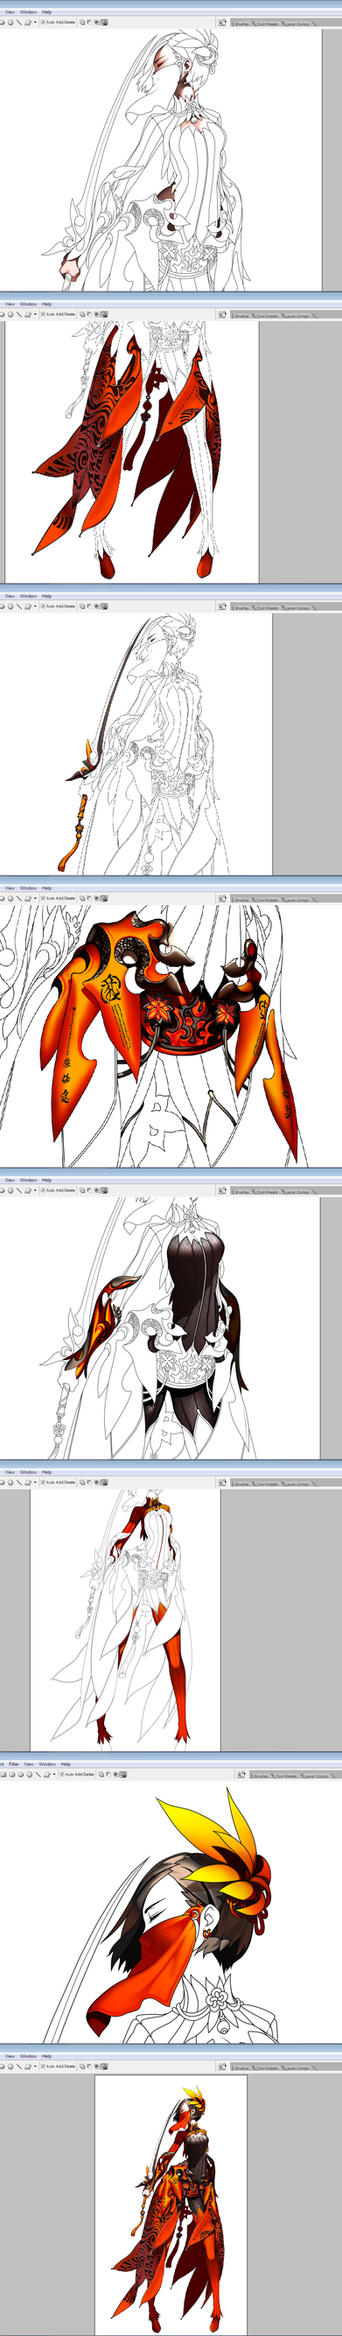 WIP Blade and Soul #2 vector by ndox9